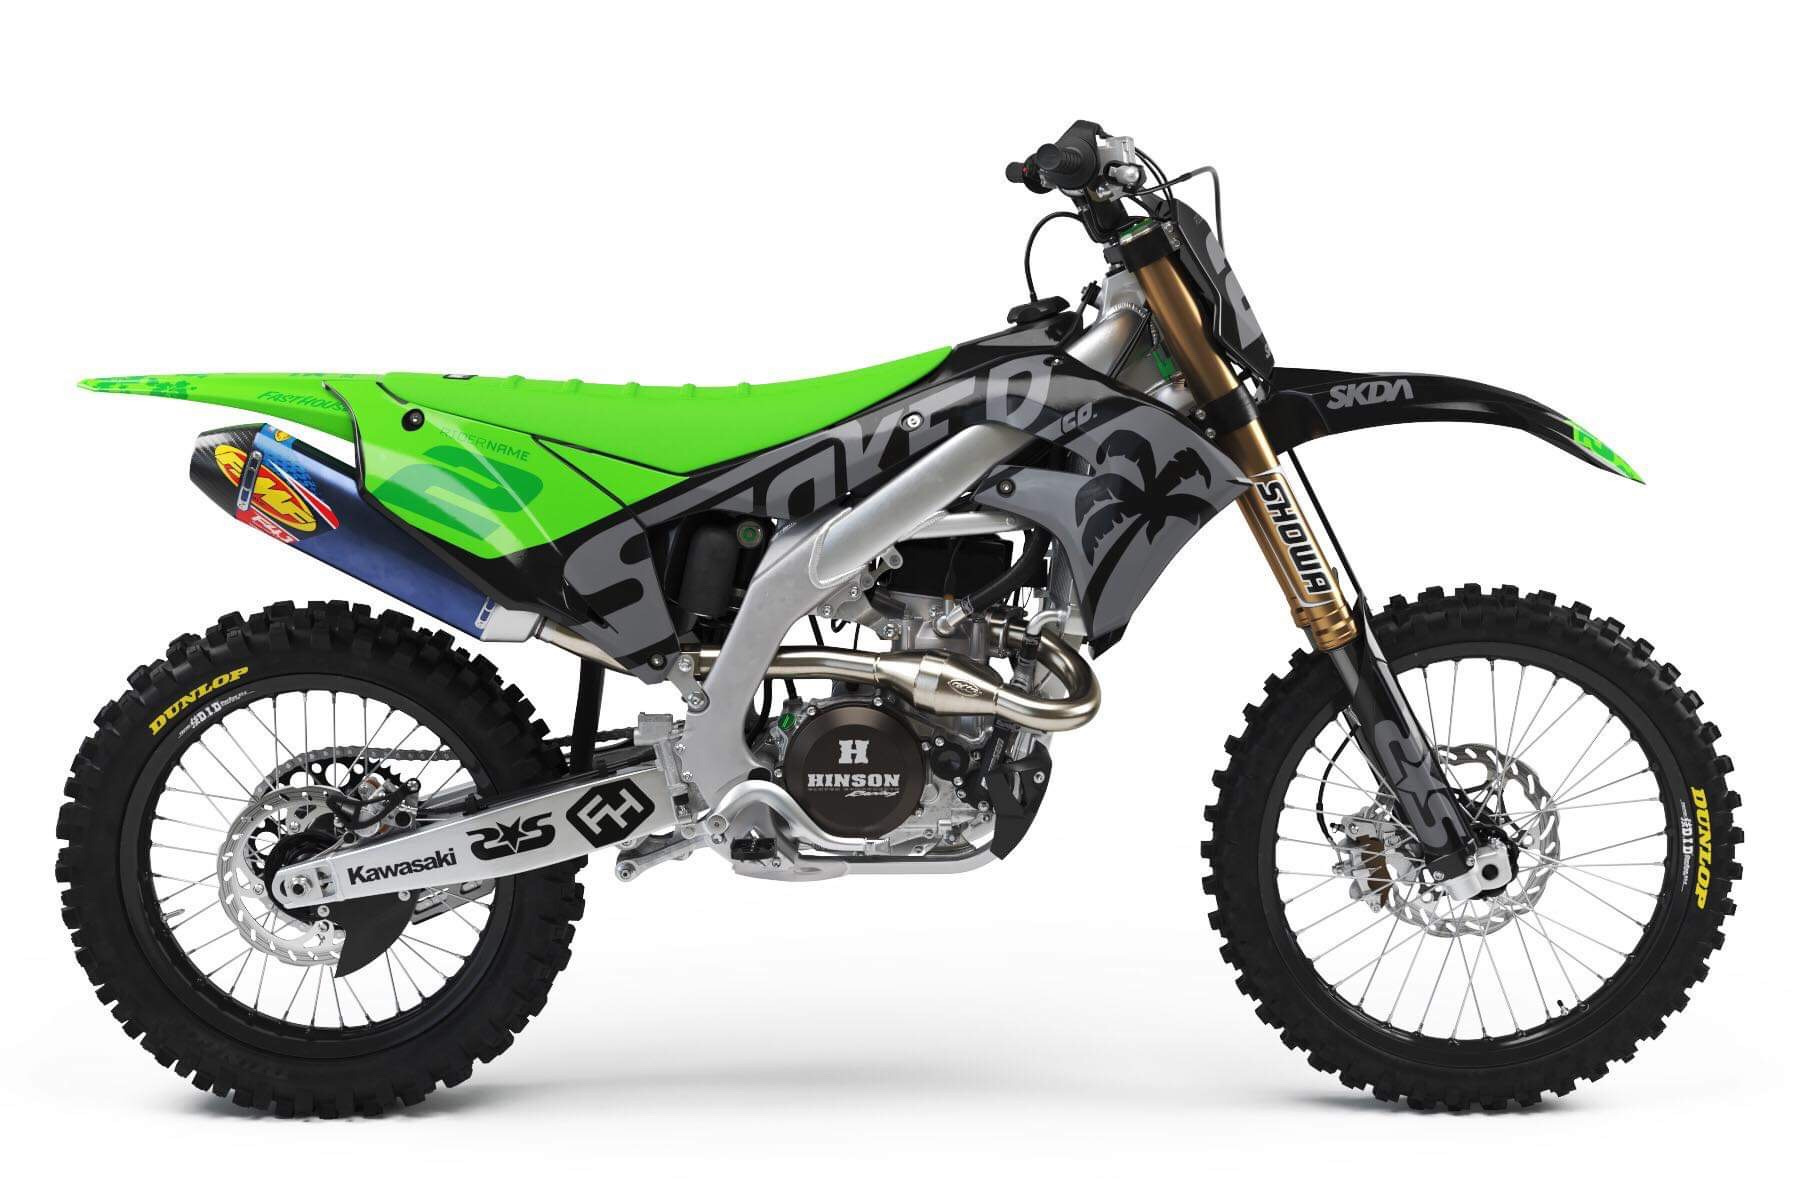 kawasaki green full graphics kit -